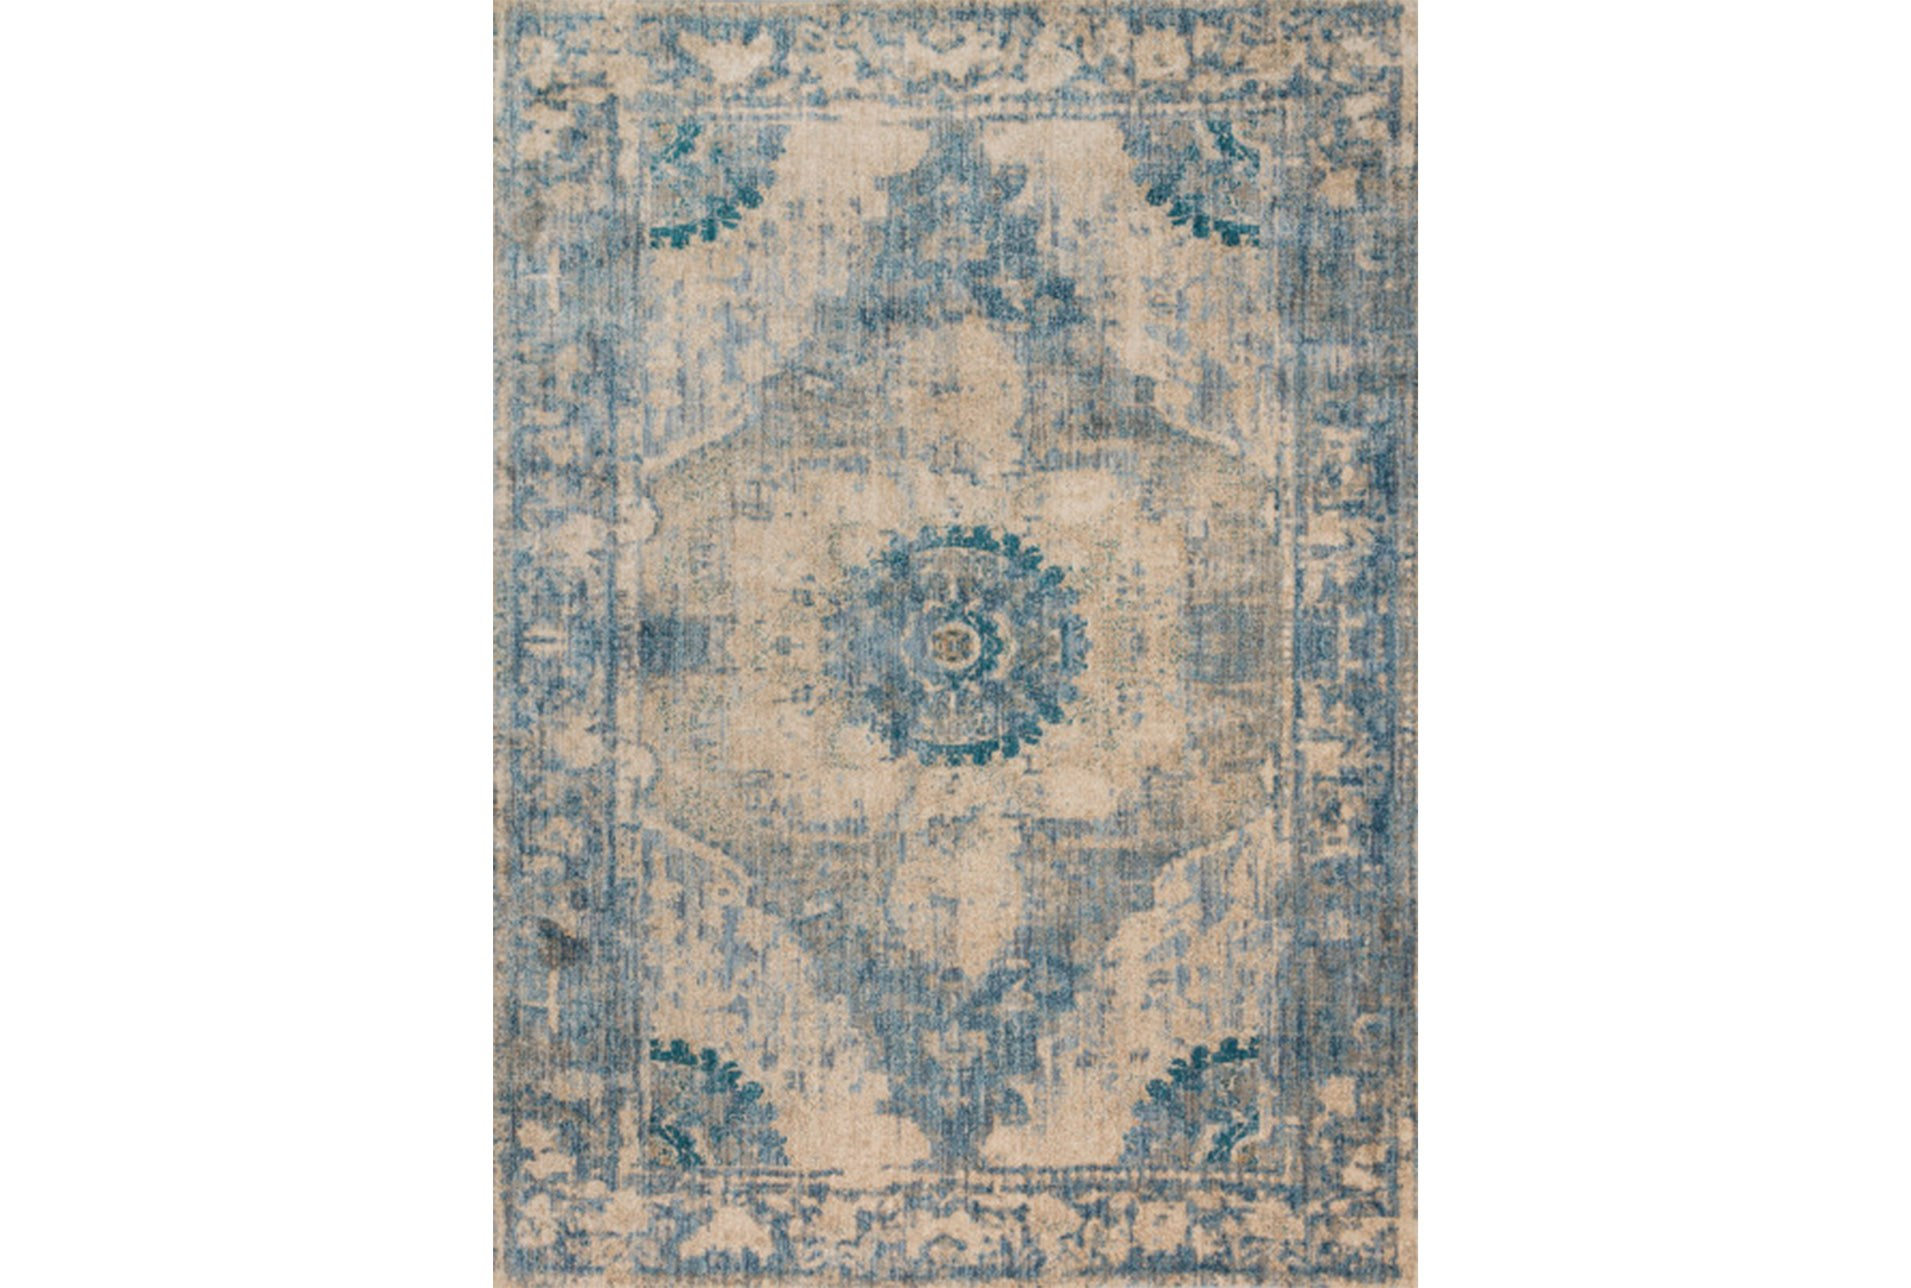 63x92 Rug Magnolia Home Kivi Sand Sky By Joanna Gaines Living Spaces